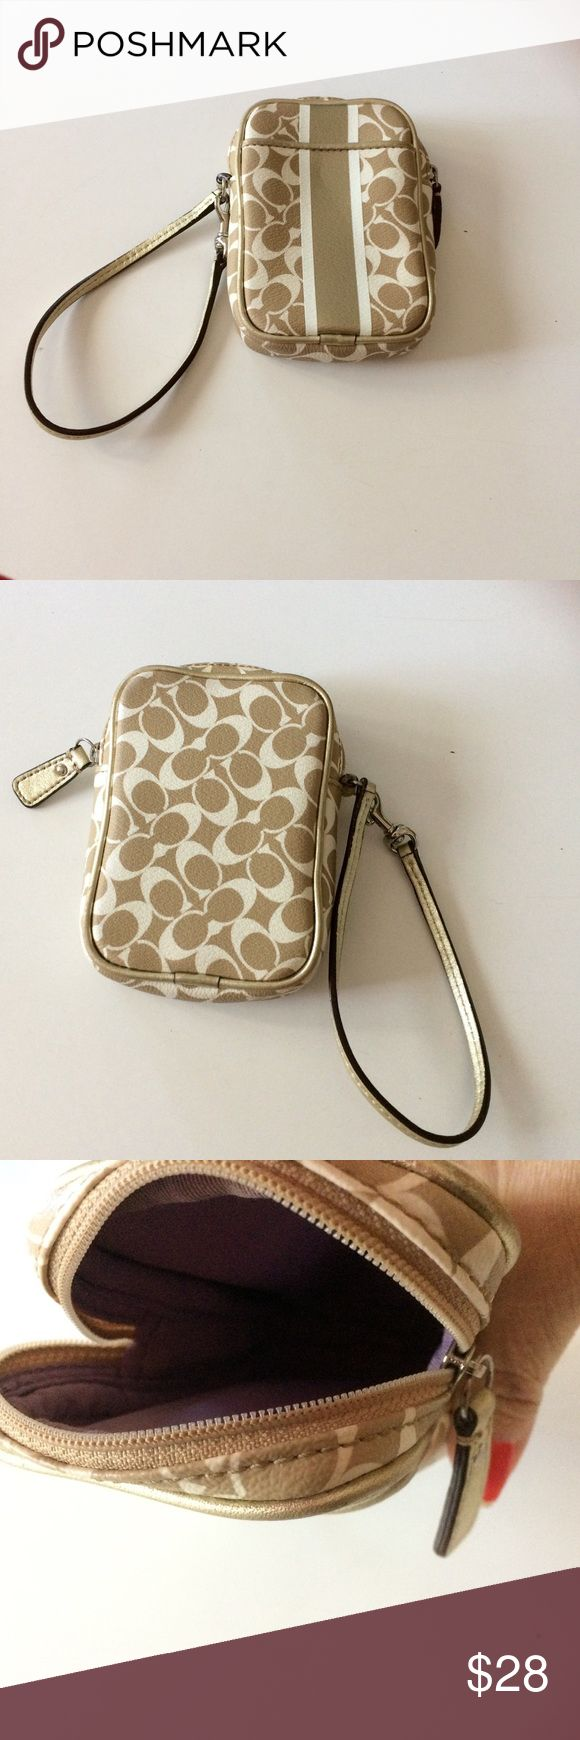 Coach Signature Gold Wristlet Cell phone holder This is a Coach wristlet cell phone holder. It would  fit a iphone 5 s. It has a faint cigarette smoke odor from former owner. Excellent condition. No rips or tears . Clean inside. It has a ykk on the zipper. Measures 5 inches tall by 3 1/2 inches wide. Coach Bags Clutches & Wristlets